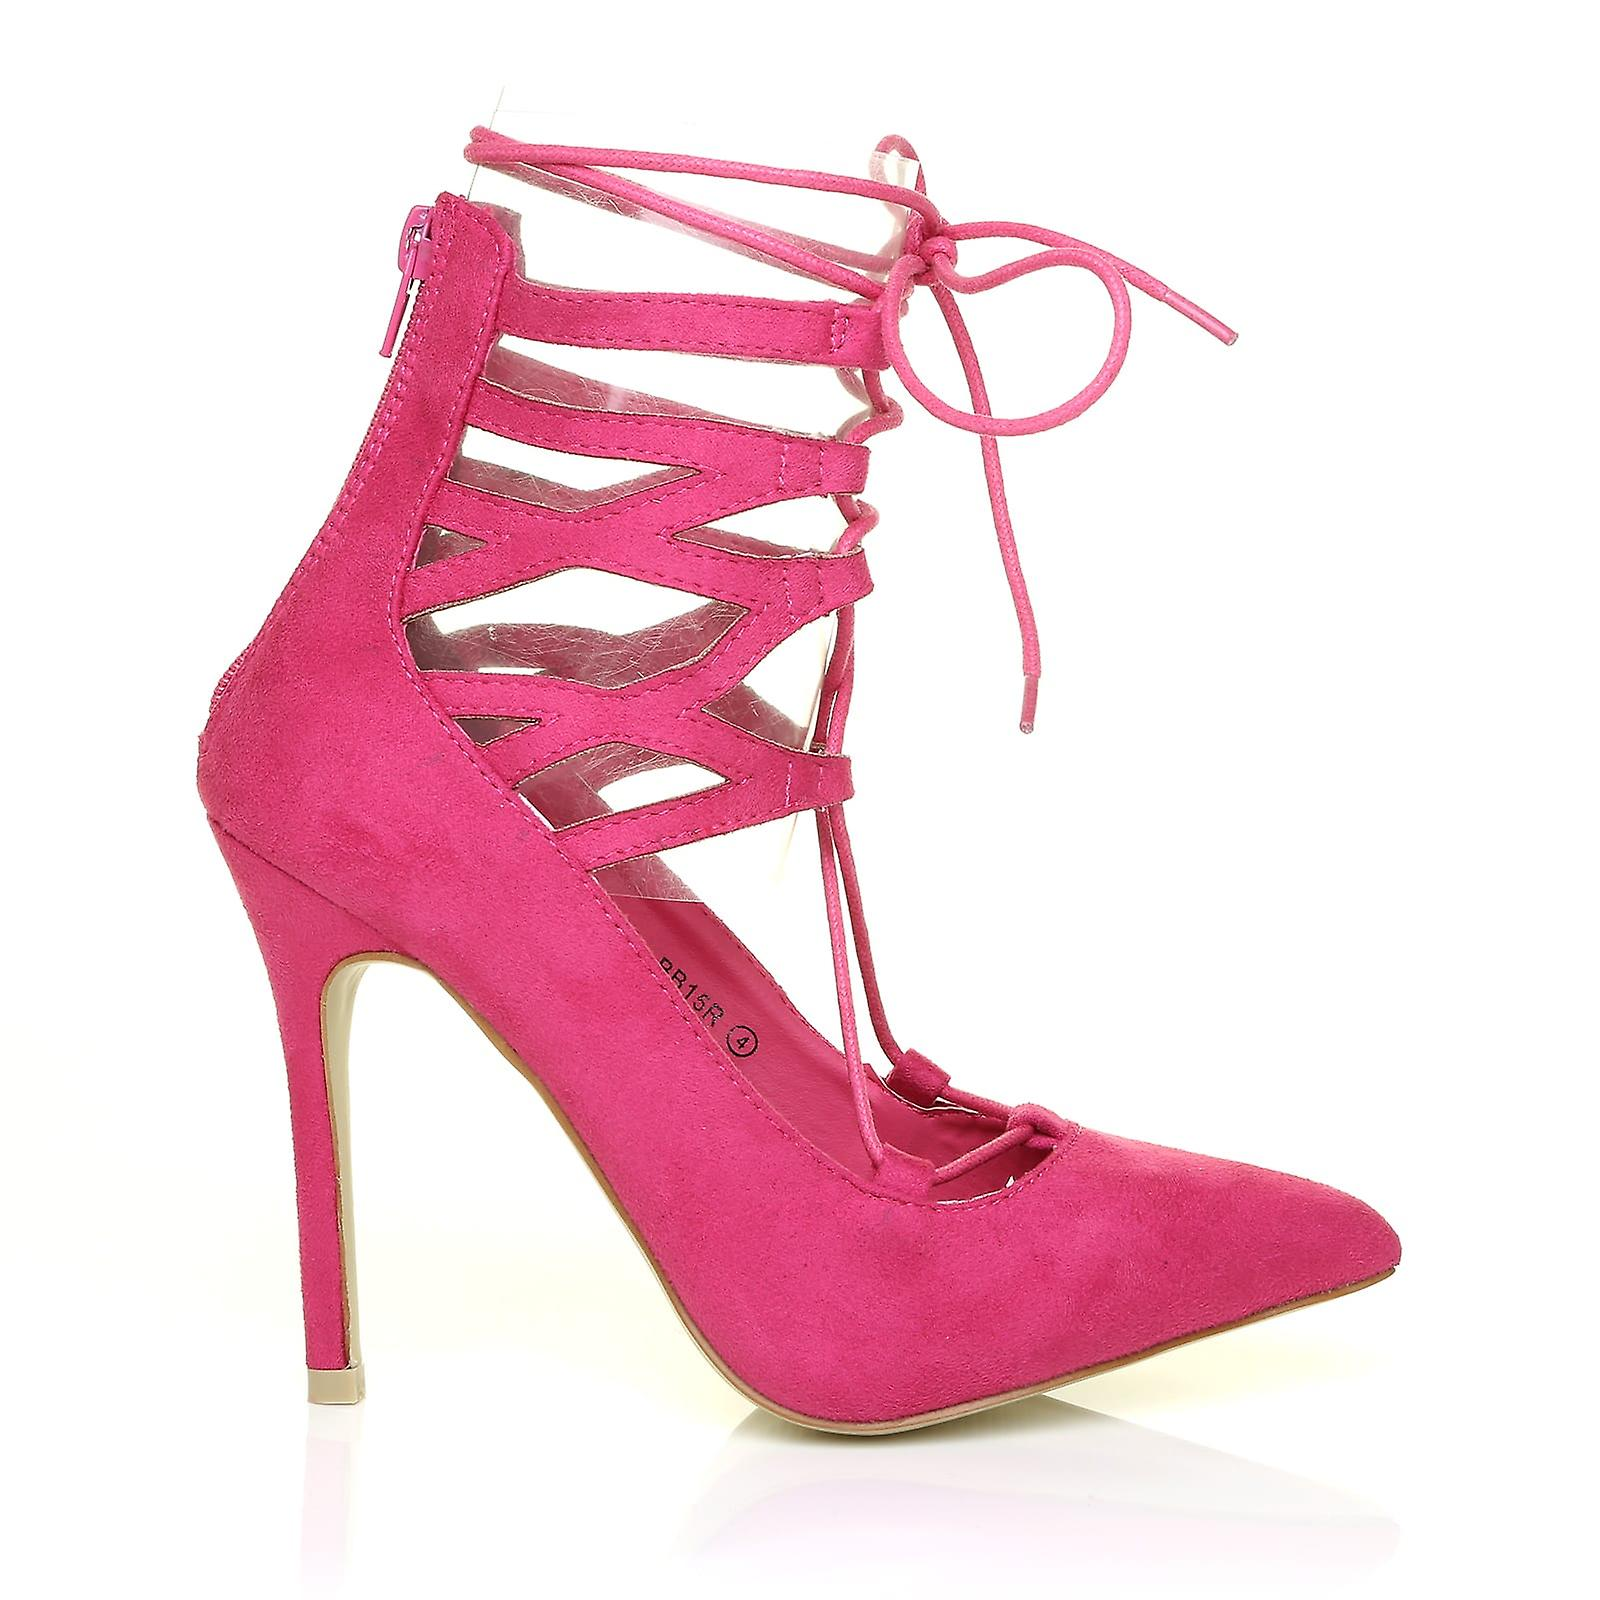 JANE Fuchsia Pink Faux Suede Ankle Lace Up Pointed Toe High Heel Shoes